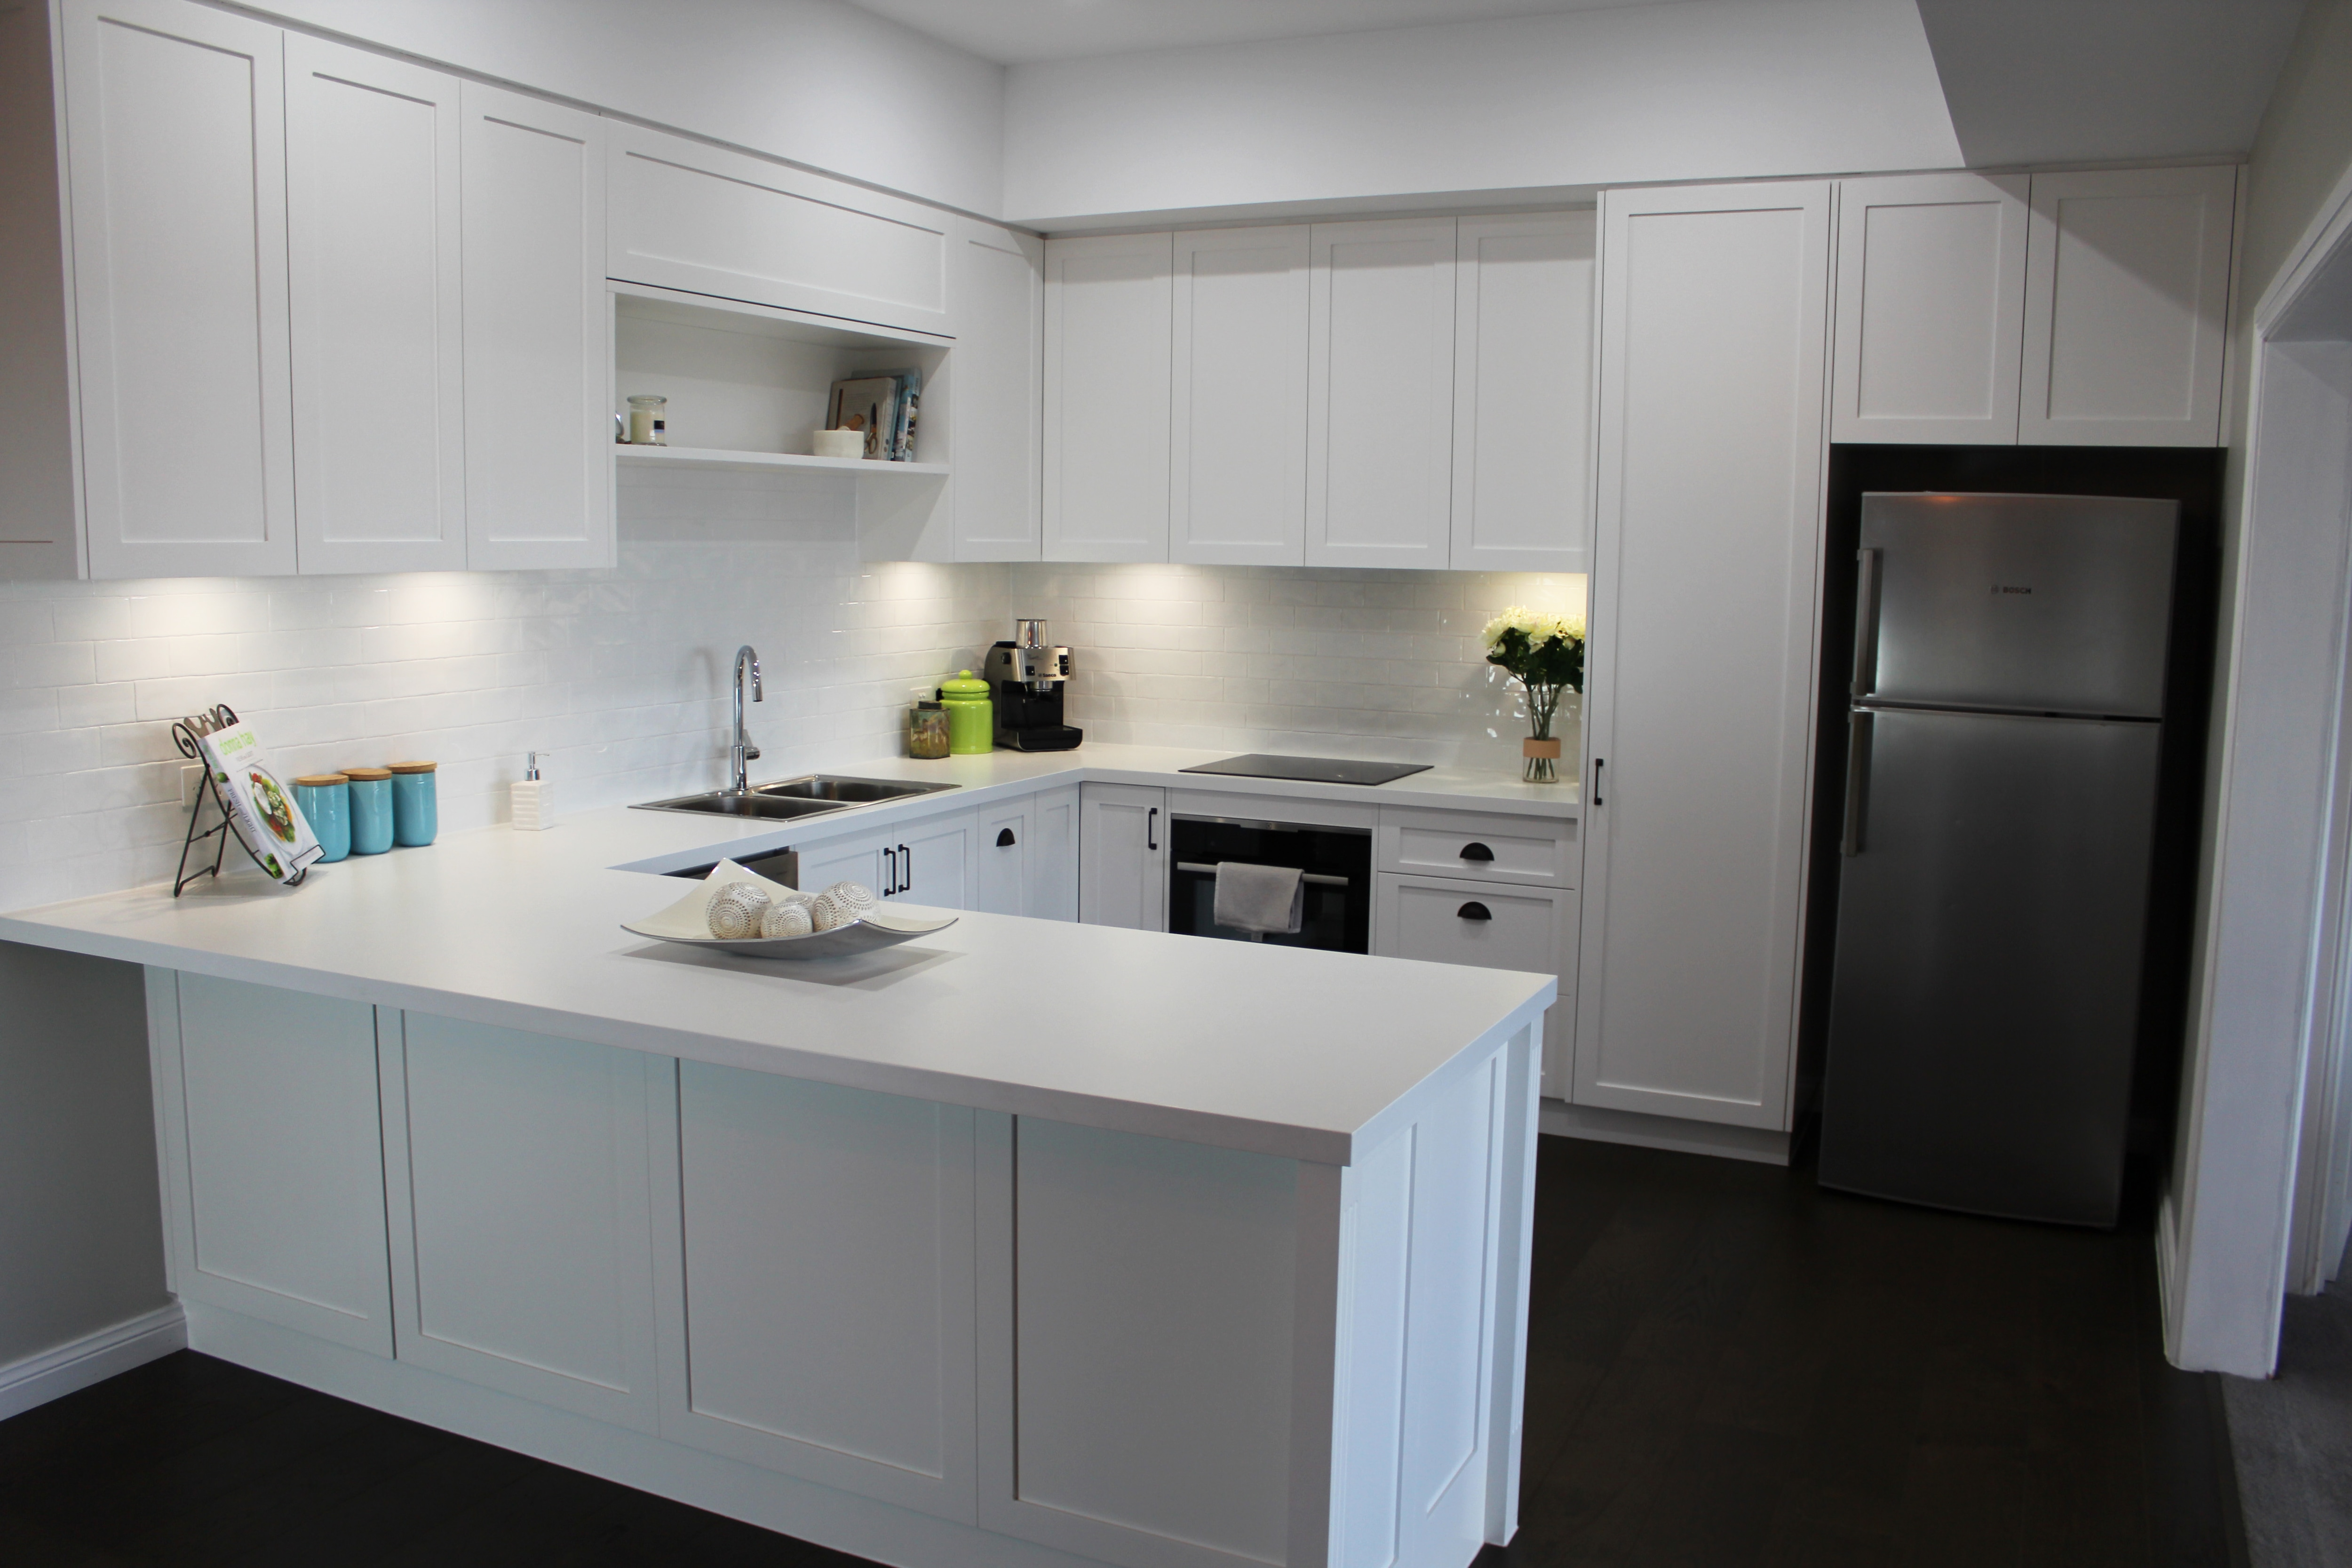 Kitchens By Design Kitchen Renovations  Designs  Birt St - Kitchen designs sa